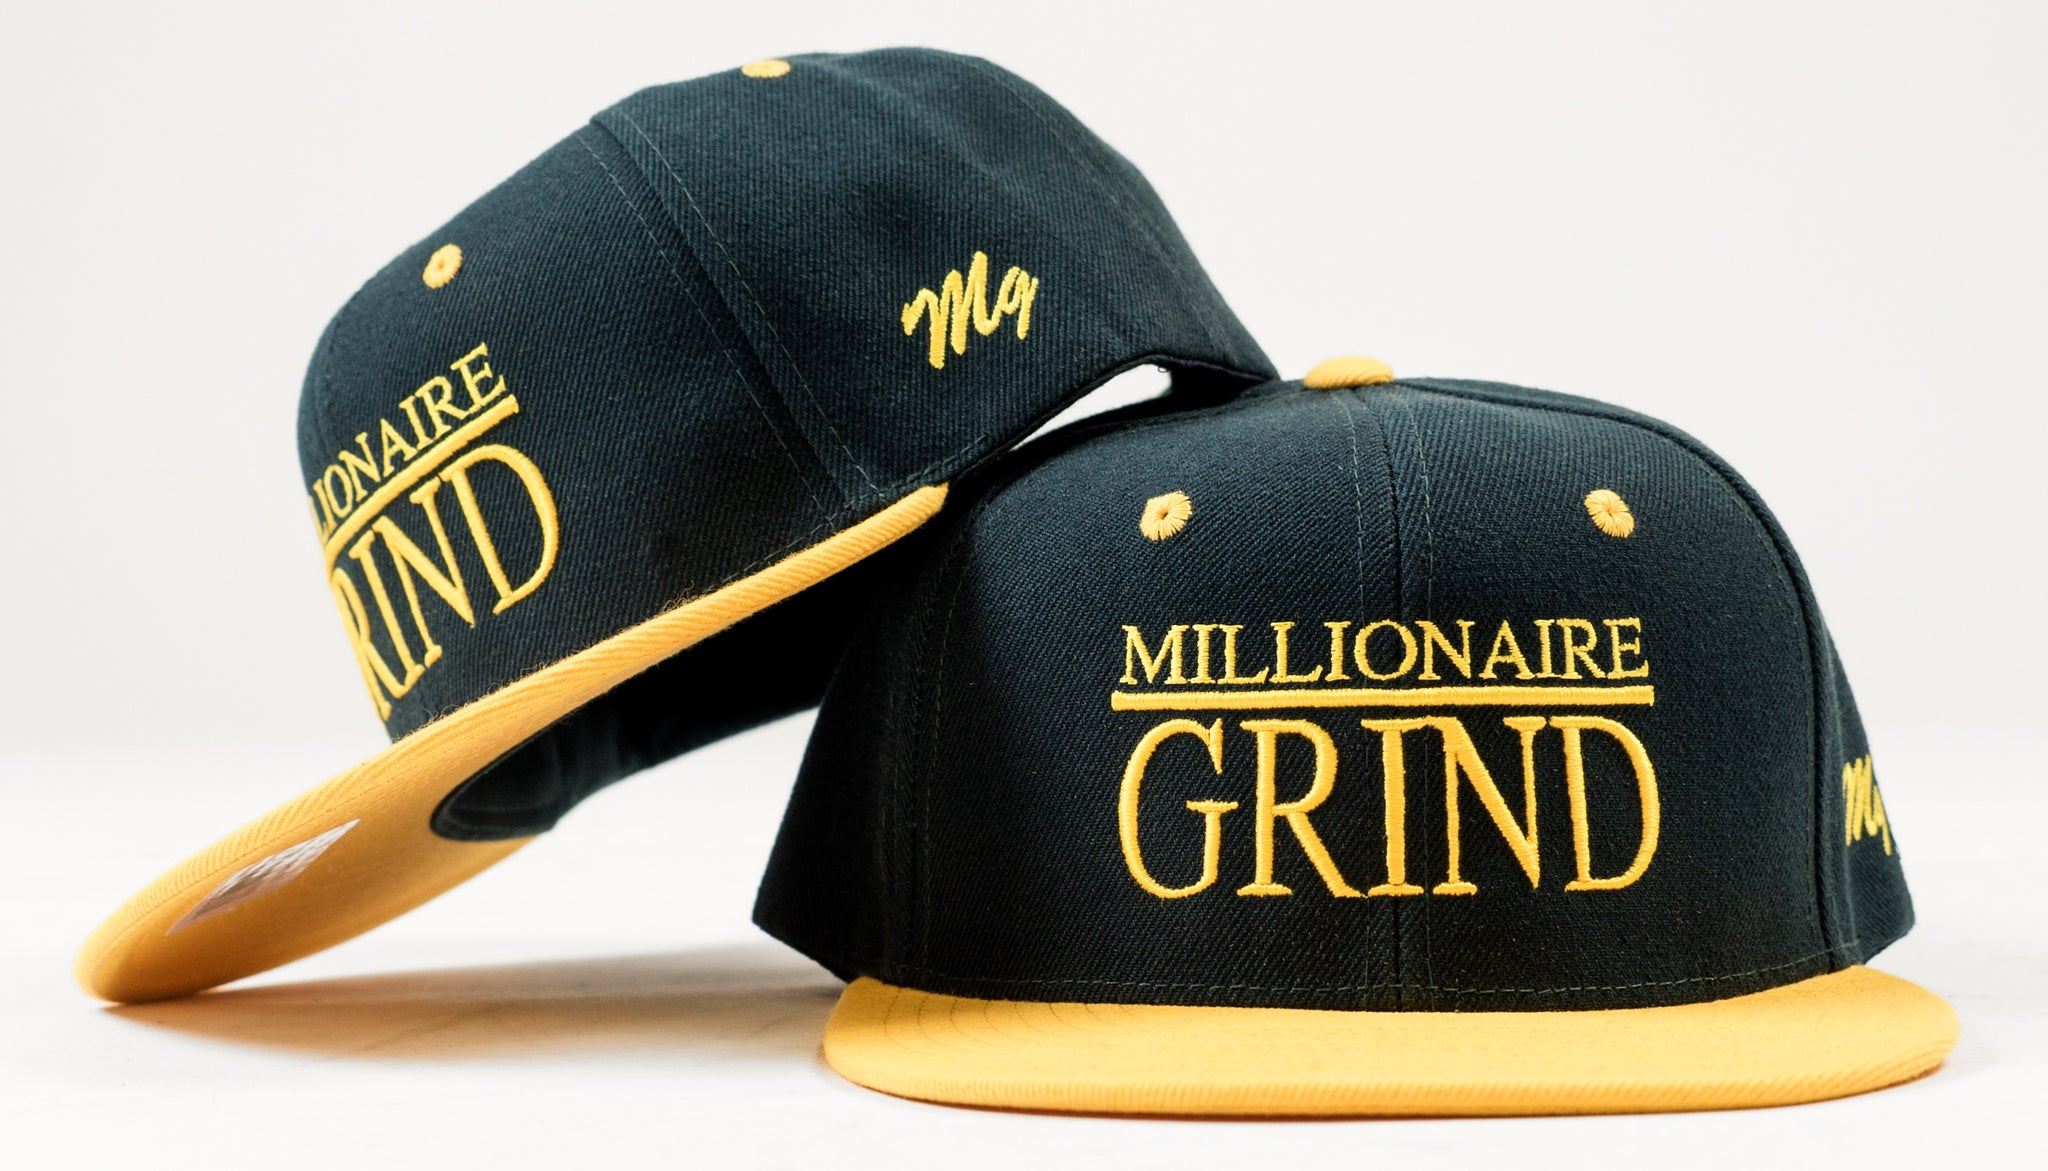 Millionaire Grind Snapback - (Dark Green / Golden Yellow)